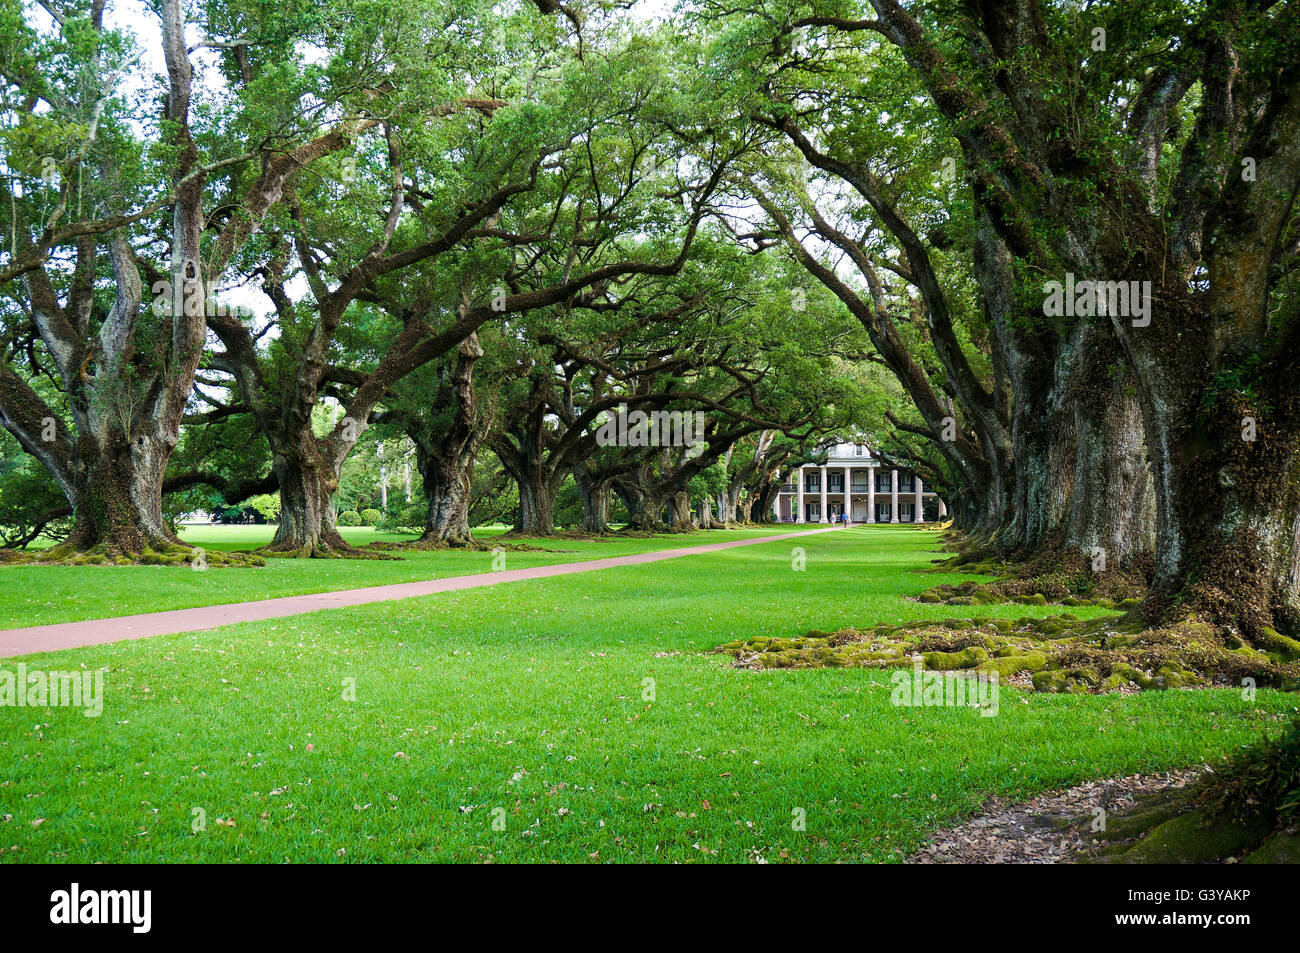 View of Oak Alley Plantation and its canopy of 300 year old live oak trees, Vacherie, Lousiana, USA. - Stock Image